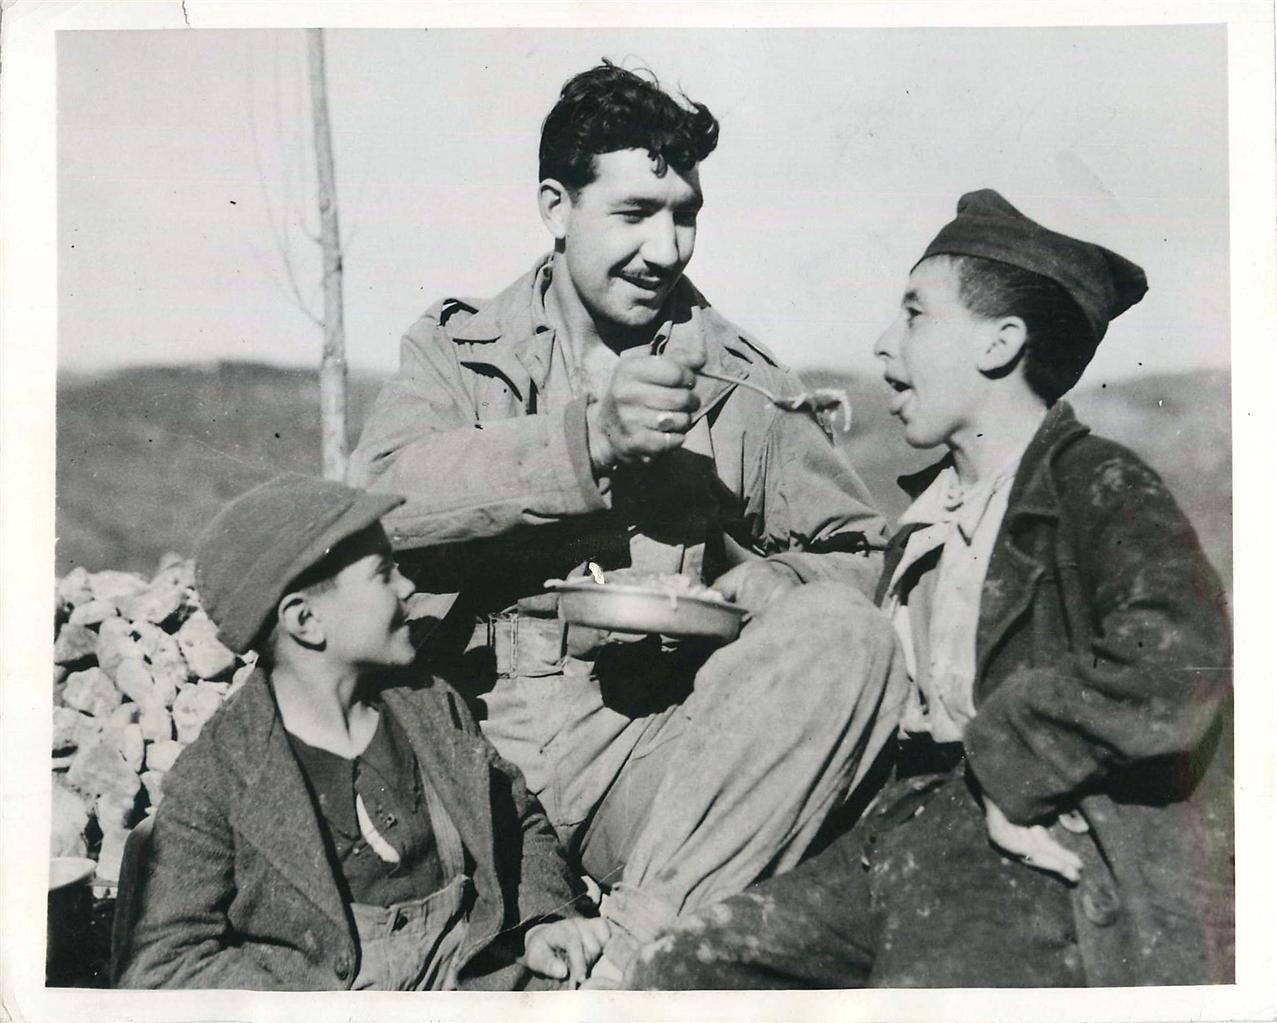 1944 U S Soldier Shares His Chow With Two Young Italian Boys Army Soldier Infantry Wwii